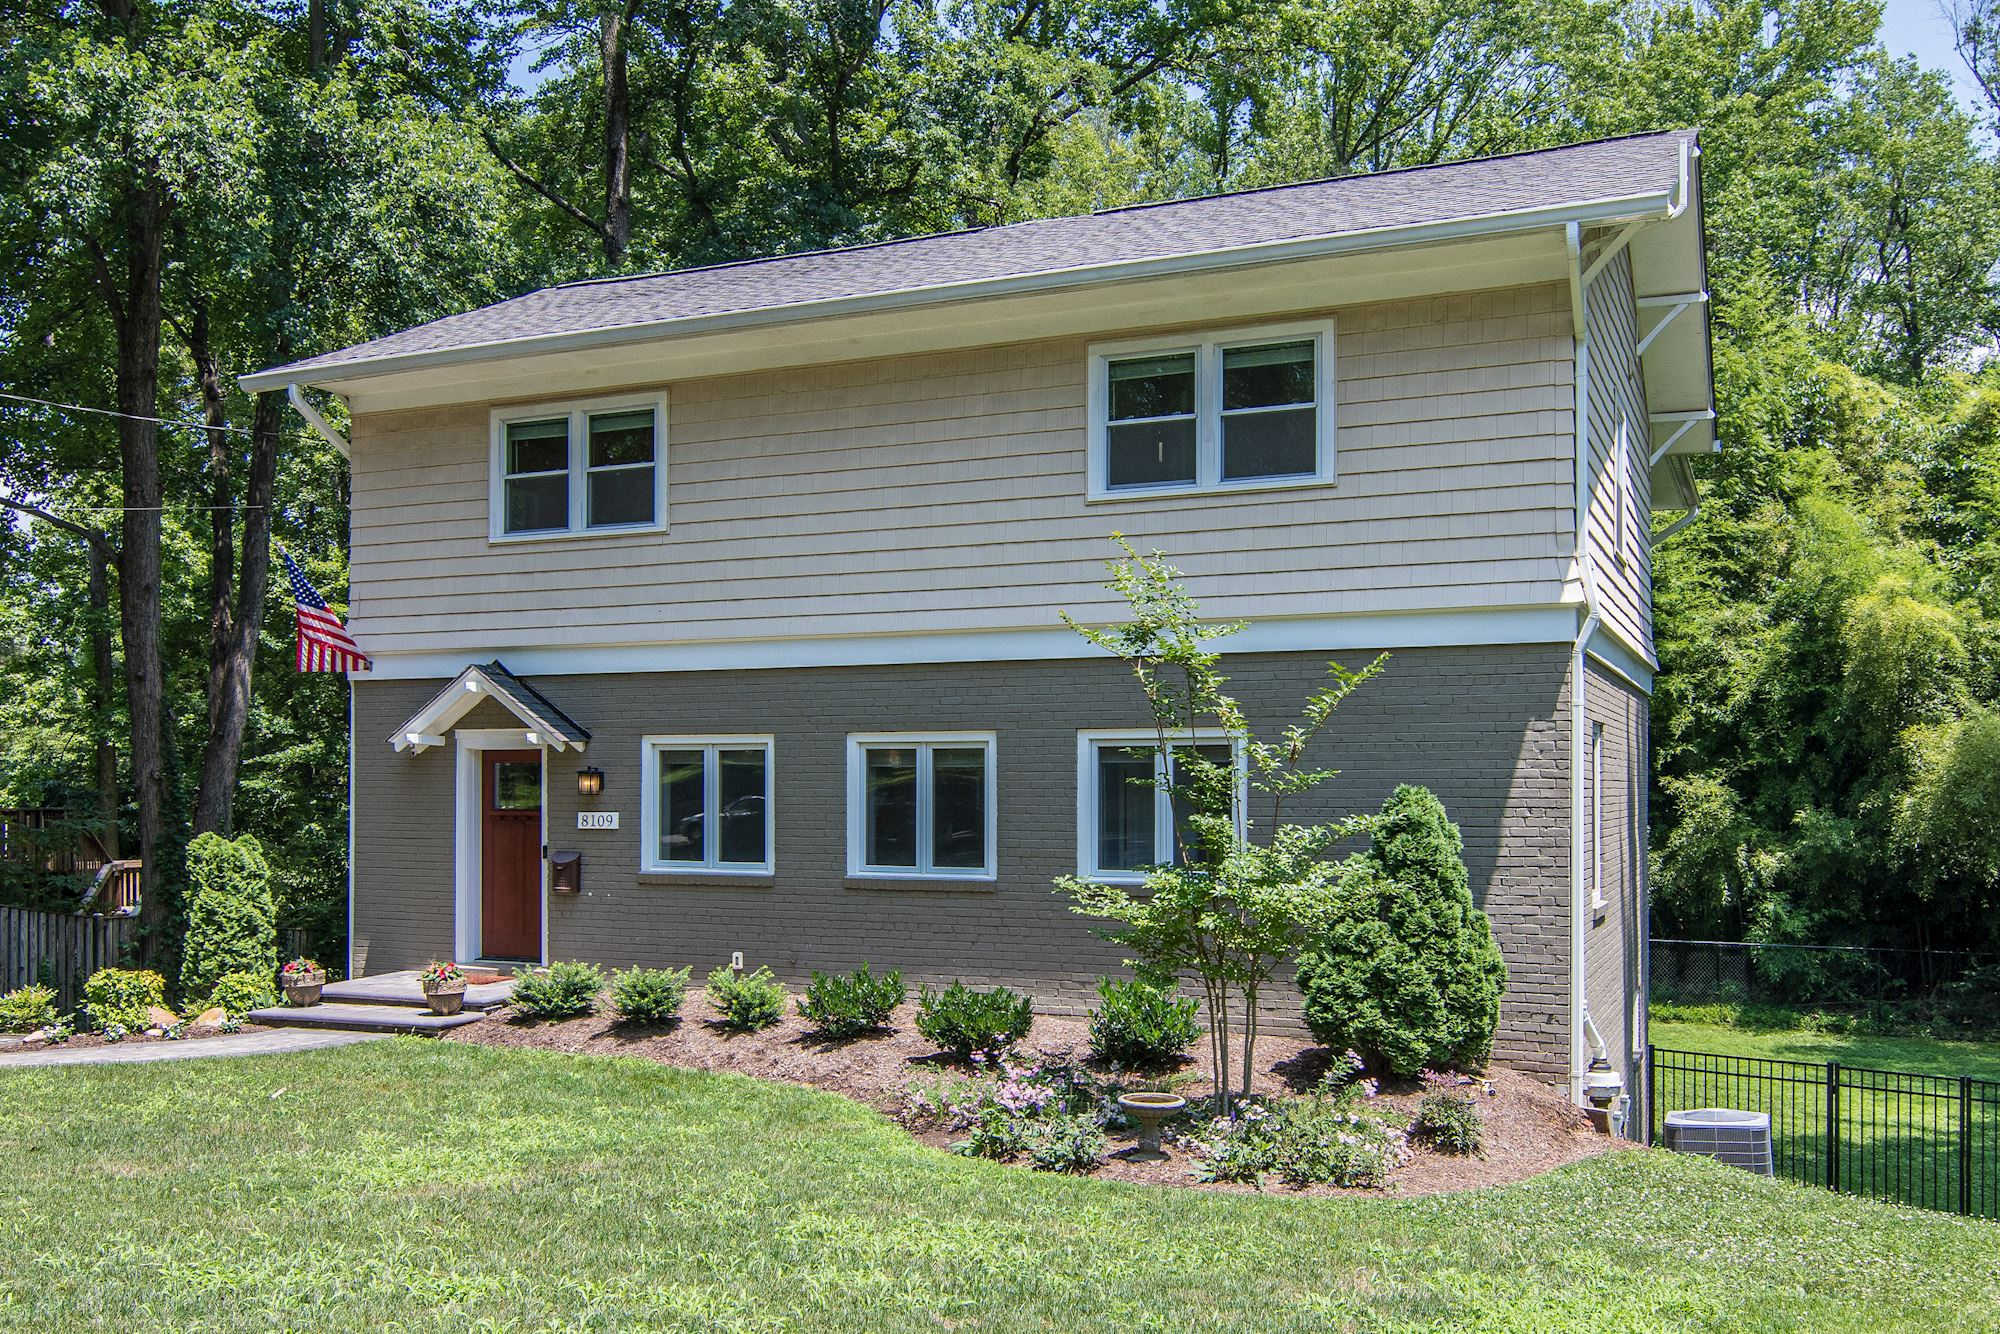 NEW LISTING:4 BD Completely Redone Home in Hollin Hall Village